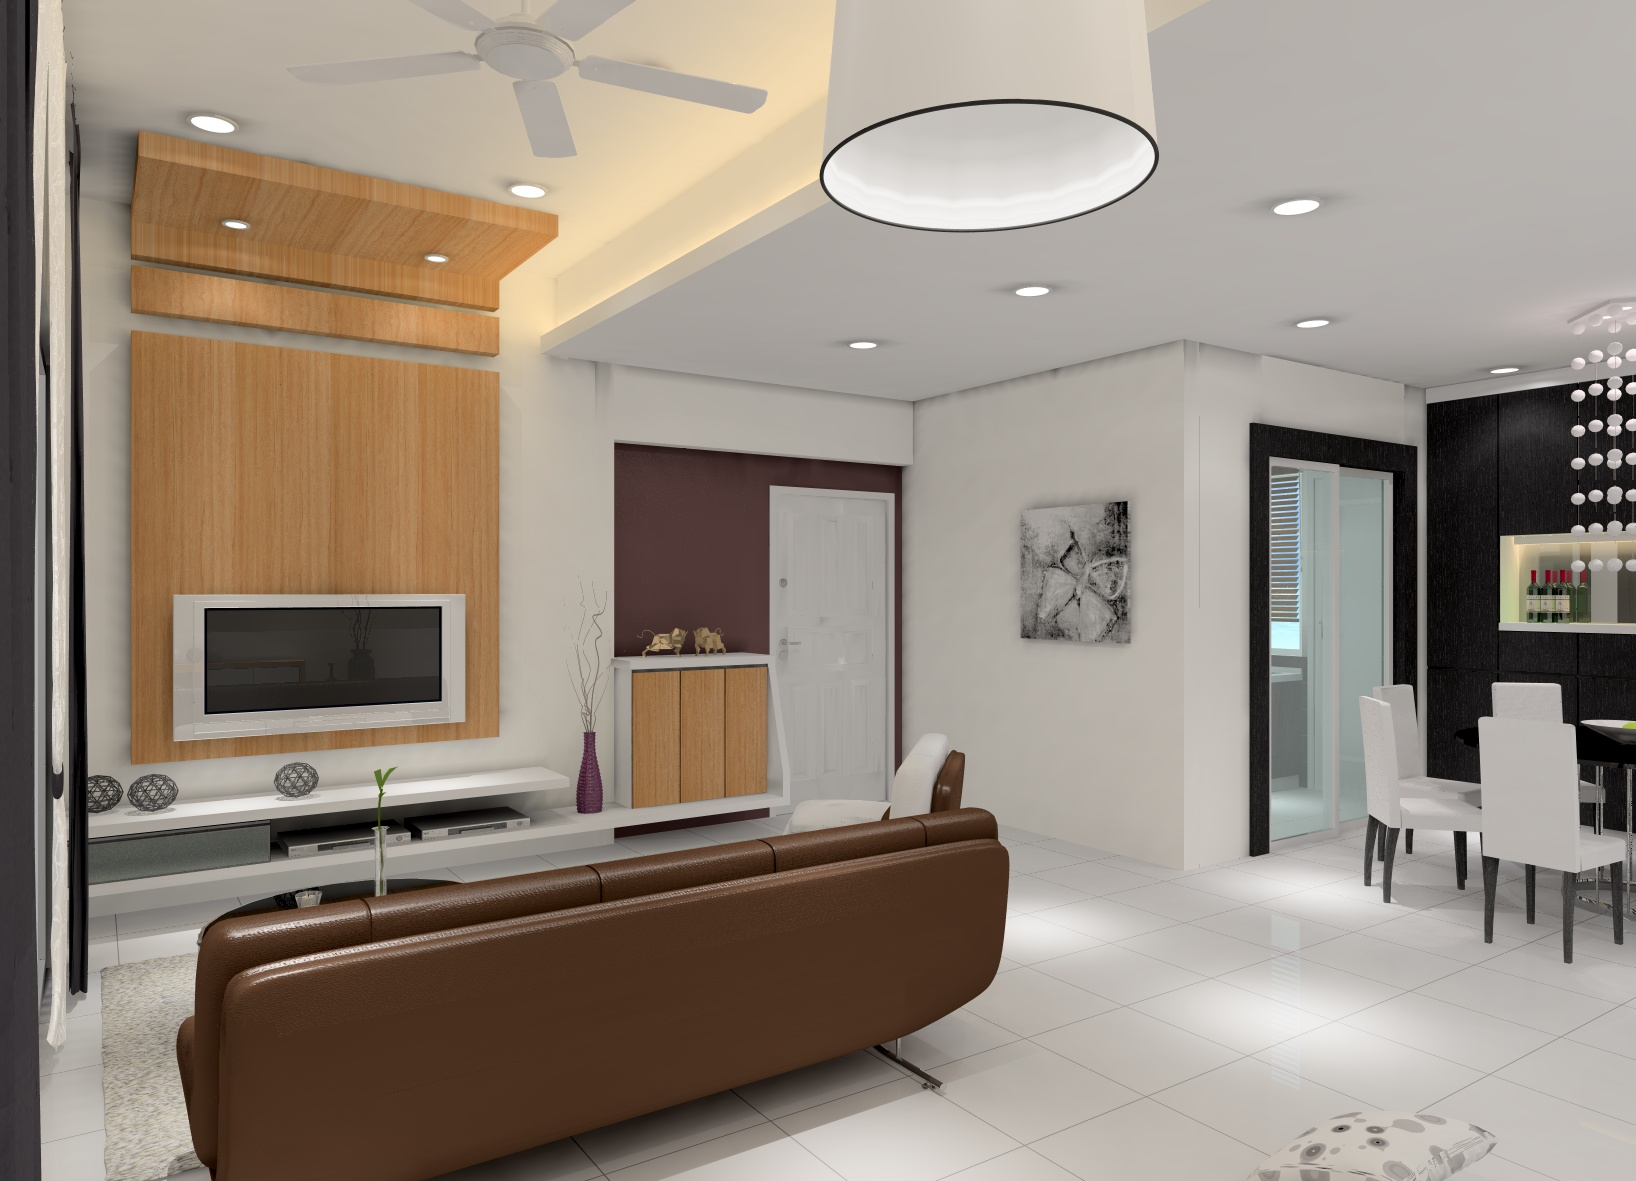 Interior Design Malaysia L Expert Interior Design Renovation Company L Yk